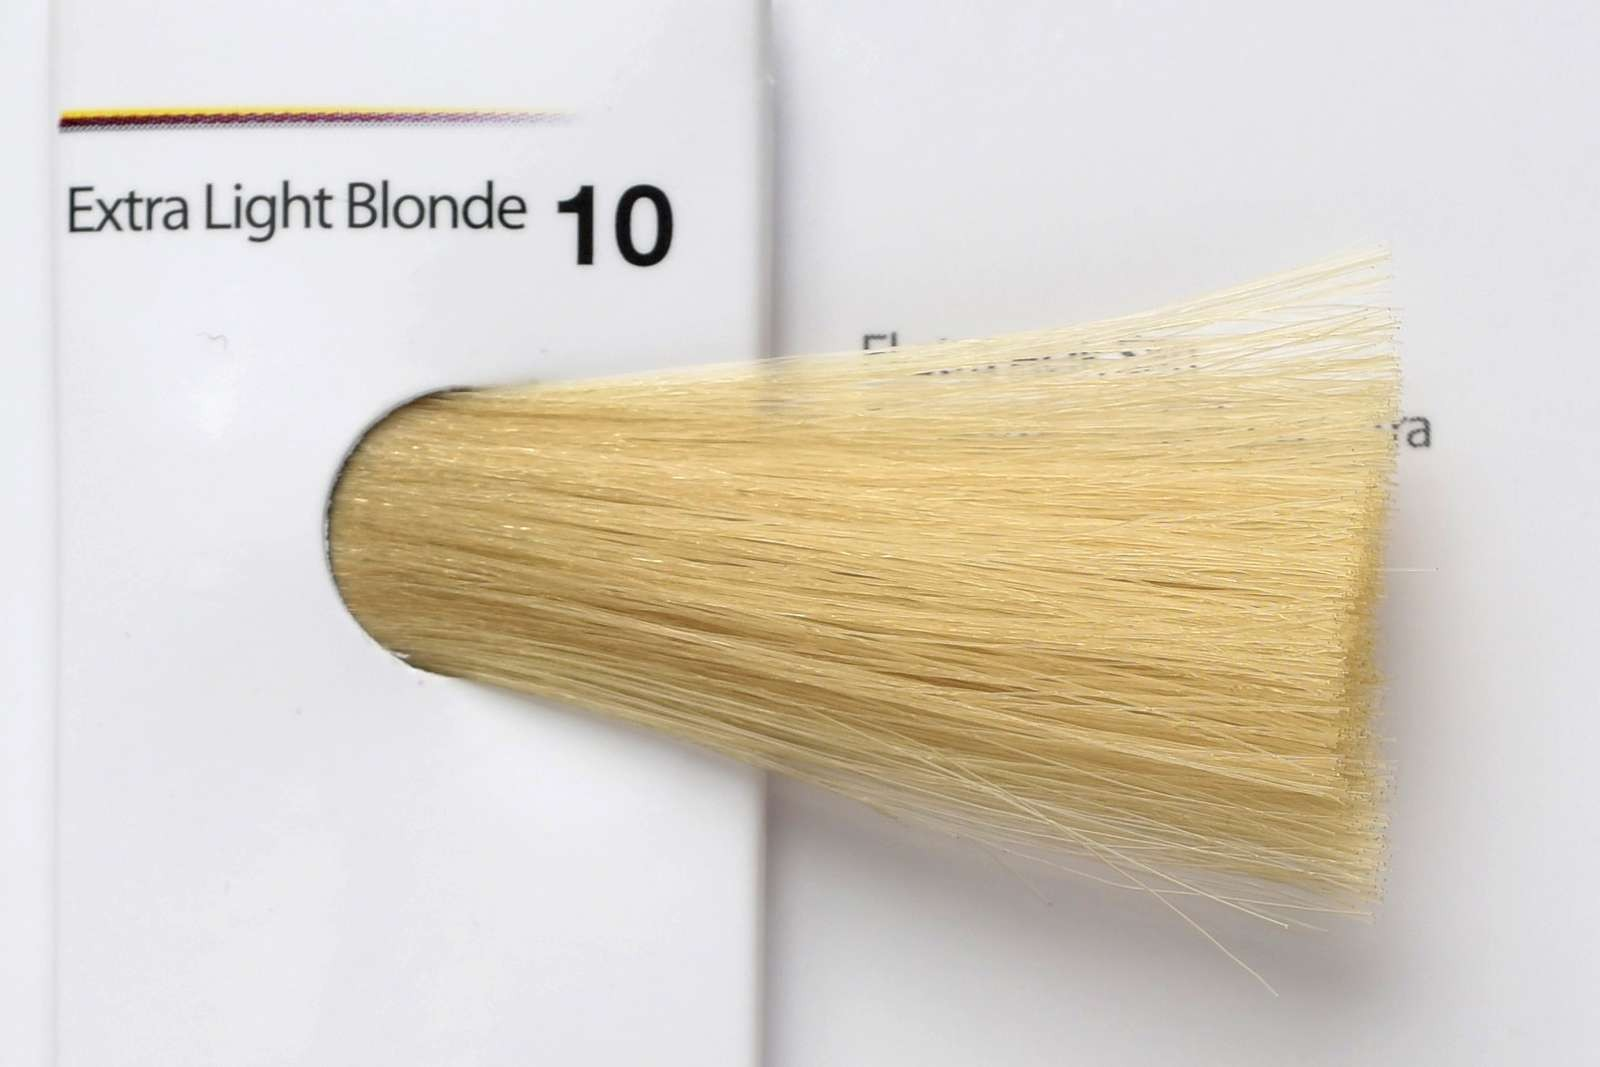 10 - Extra Light Blonde-swatch